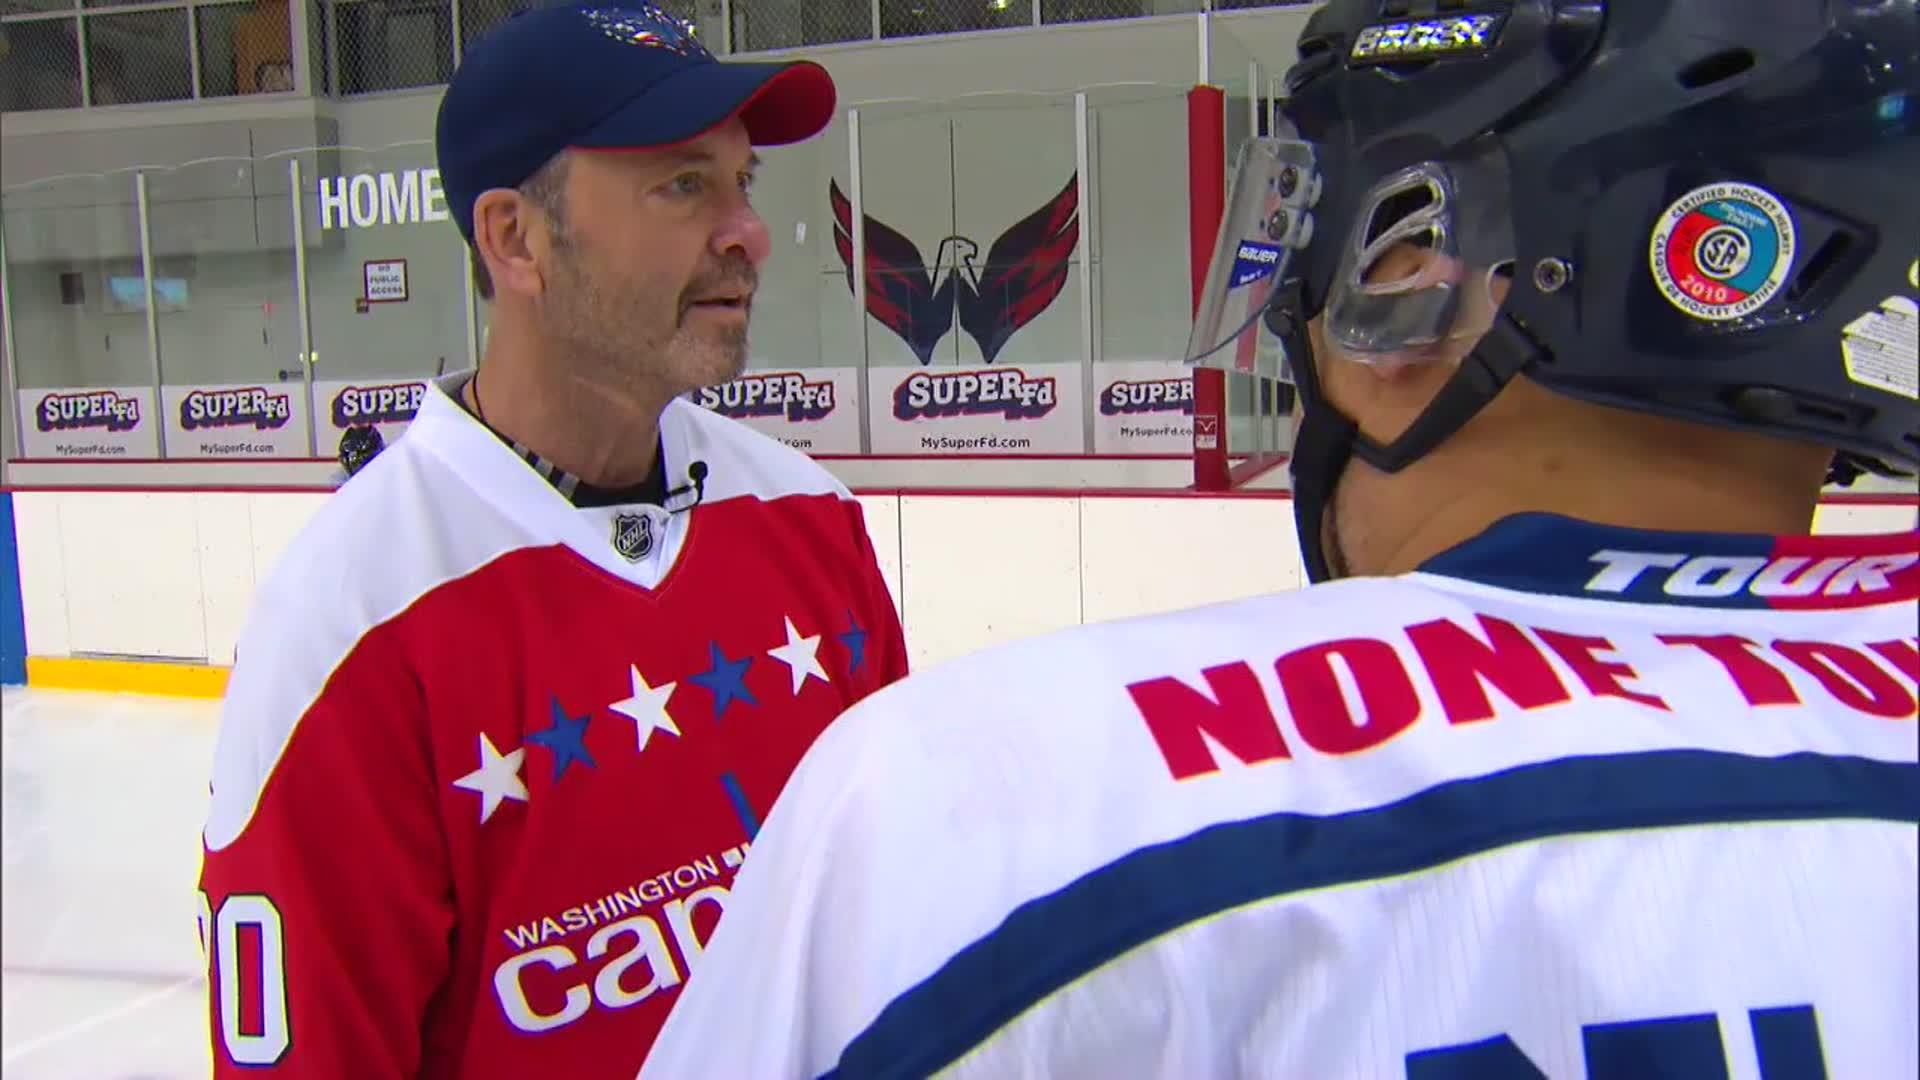 Clint Malarchuk Hits Ice With Usa Warriors 2 10 17 Monumental